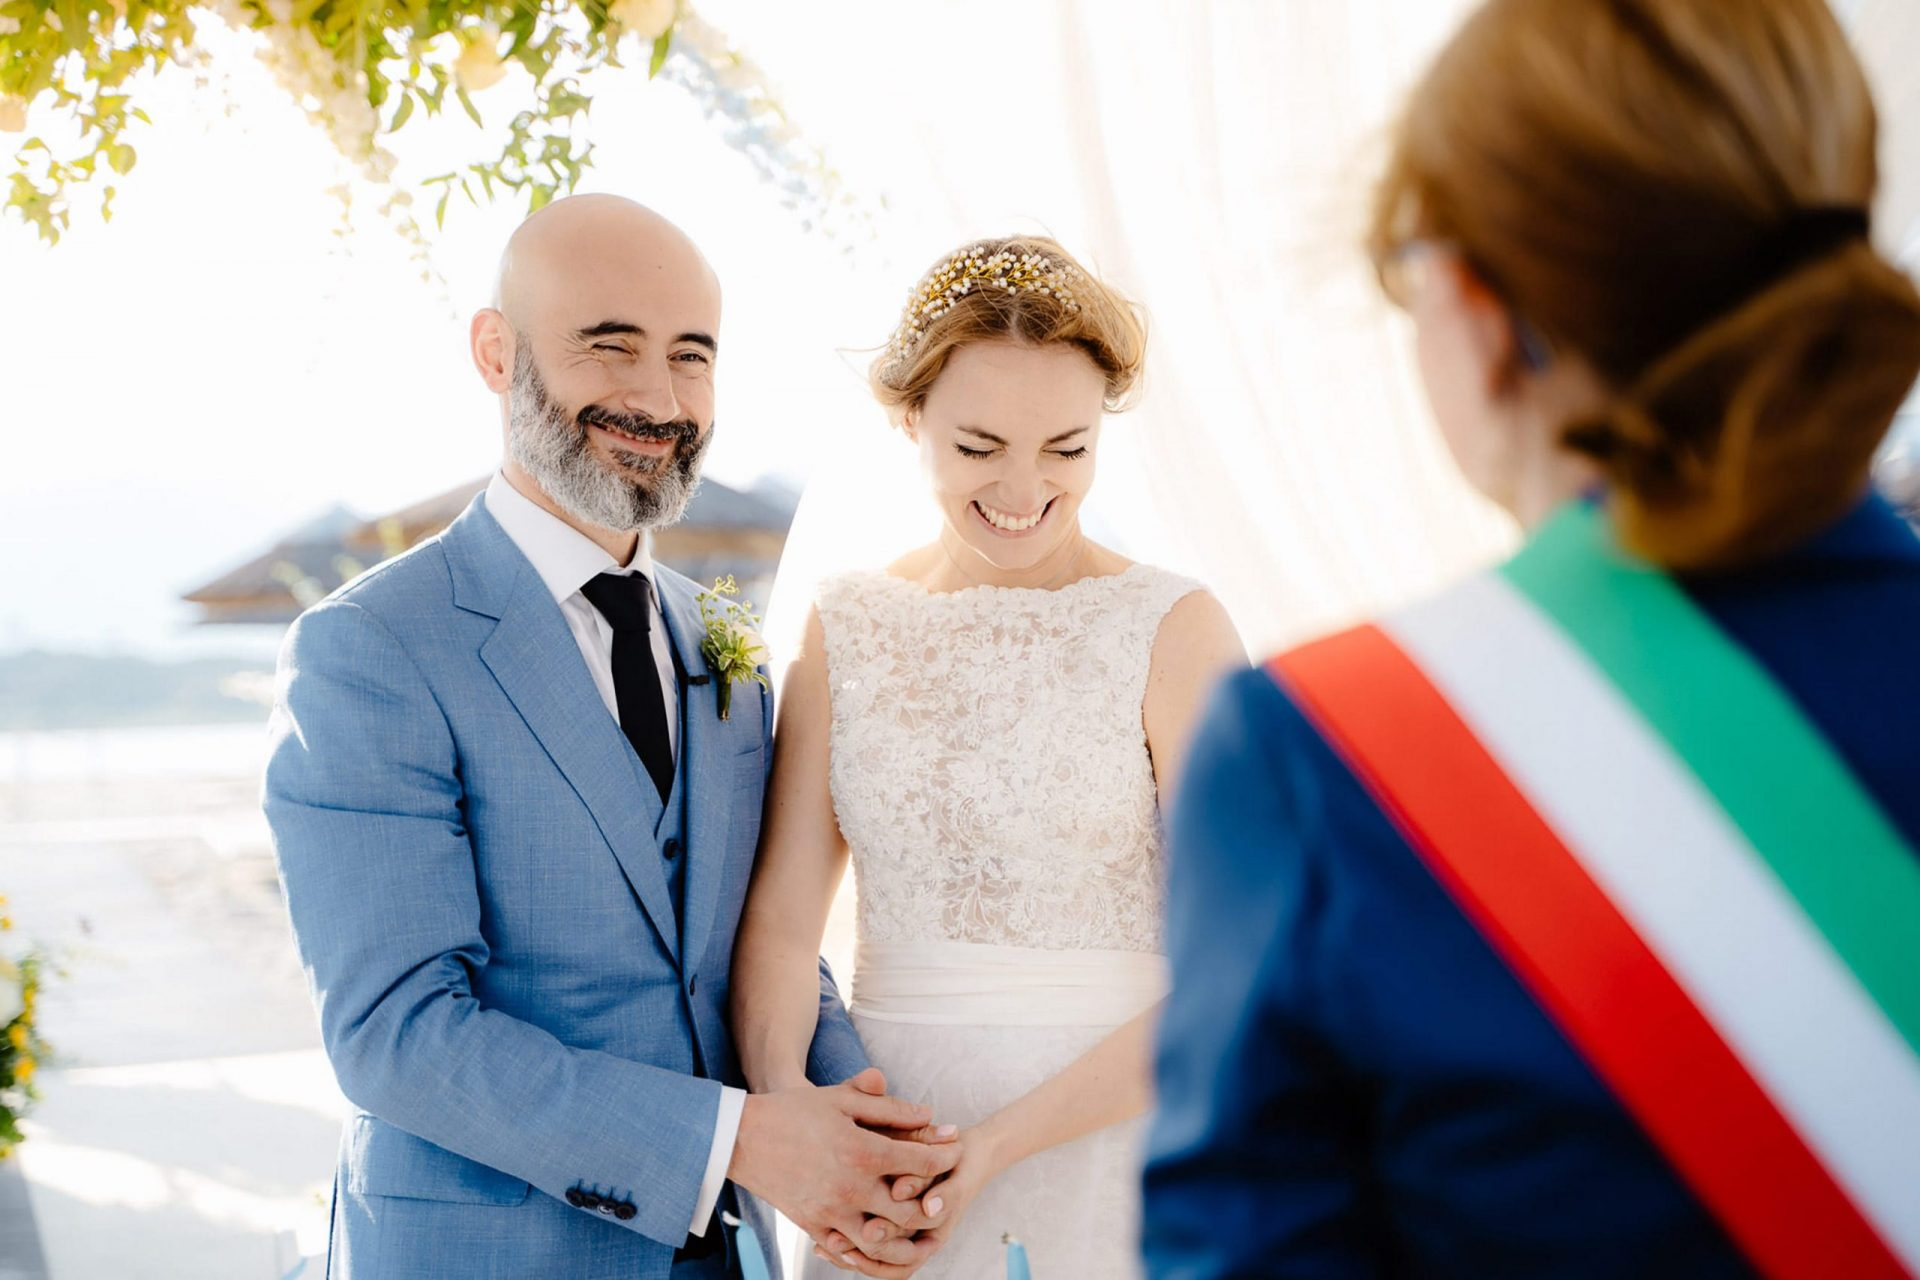 Linda and Enrico, the bride and the groom